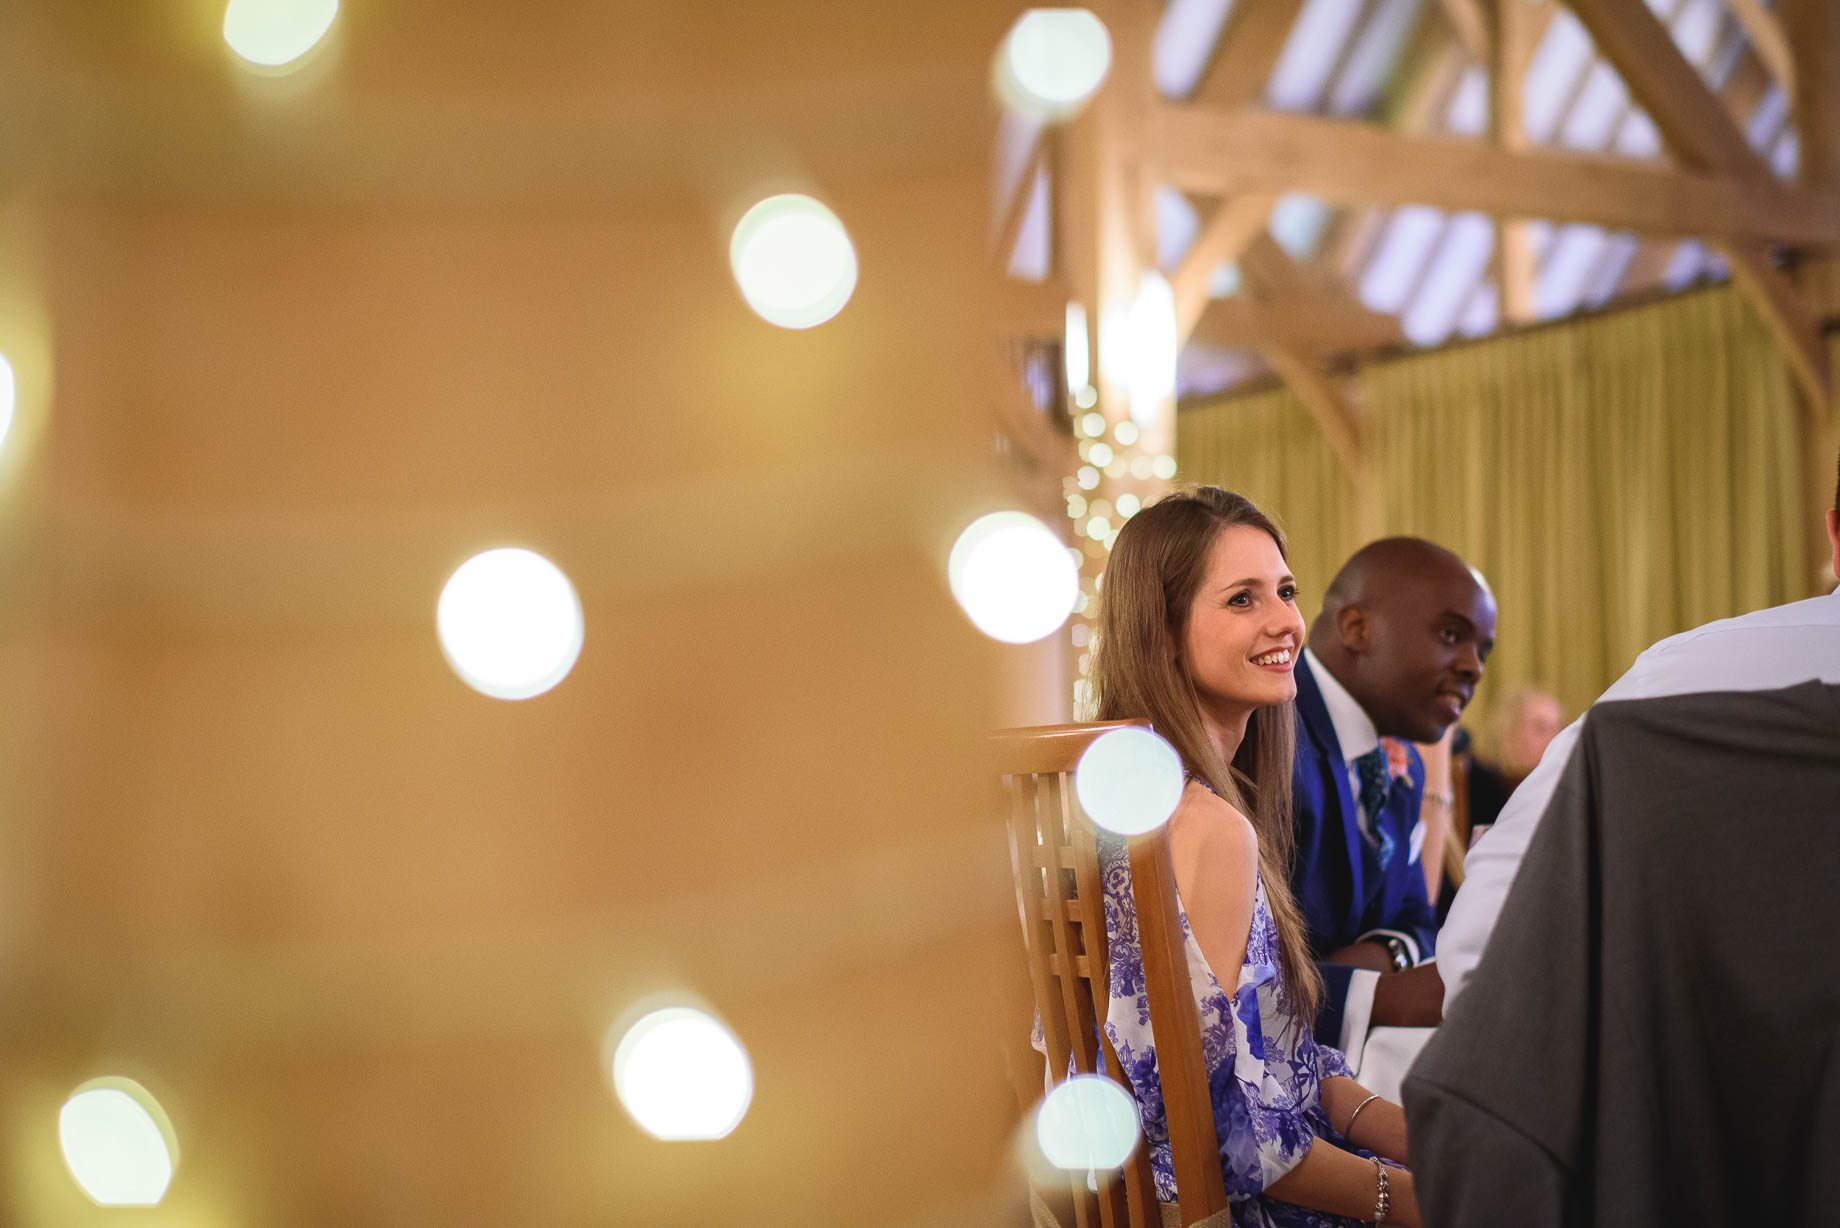 Rivervale Barn wedding photography by Guy Collier - Claire and Simon (113 of 133)